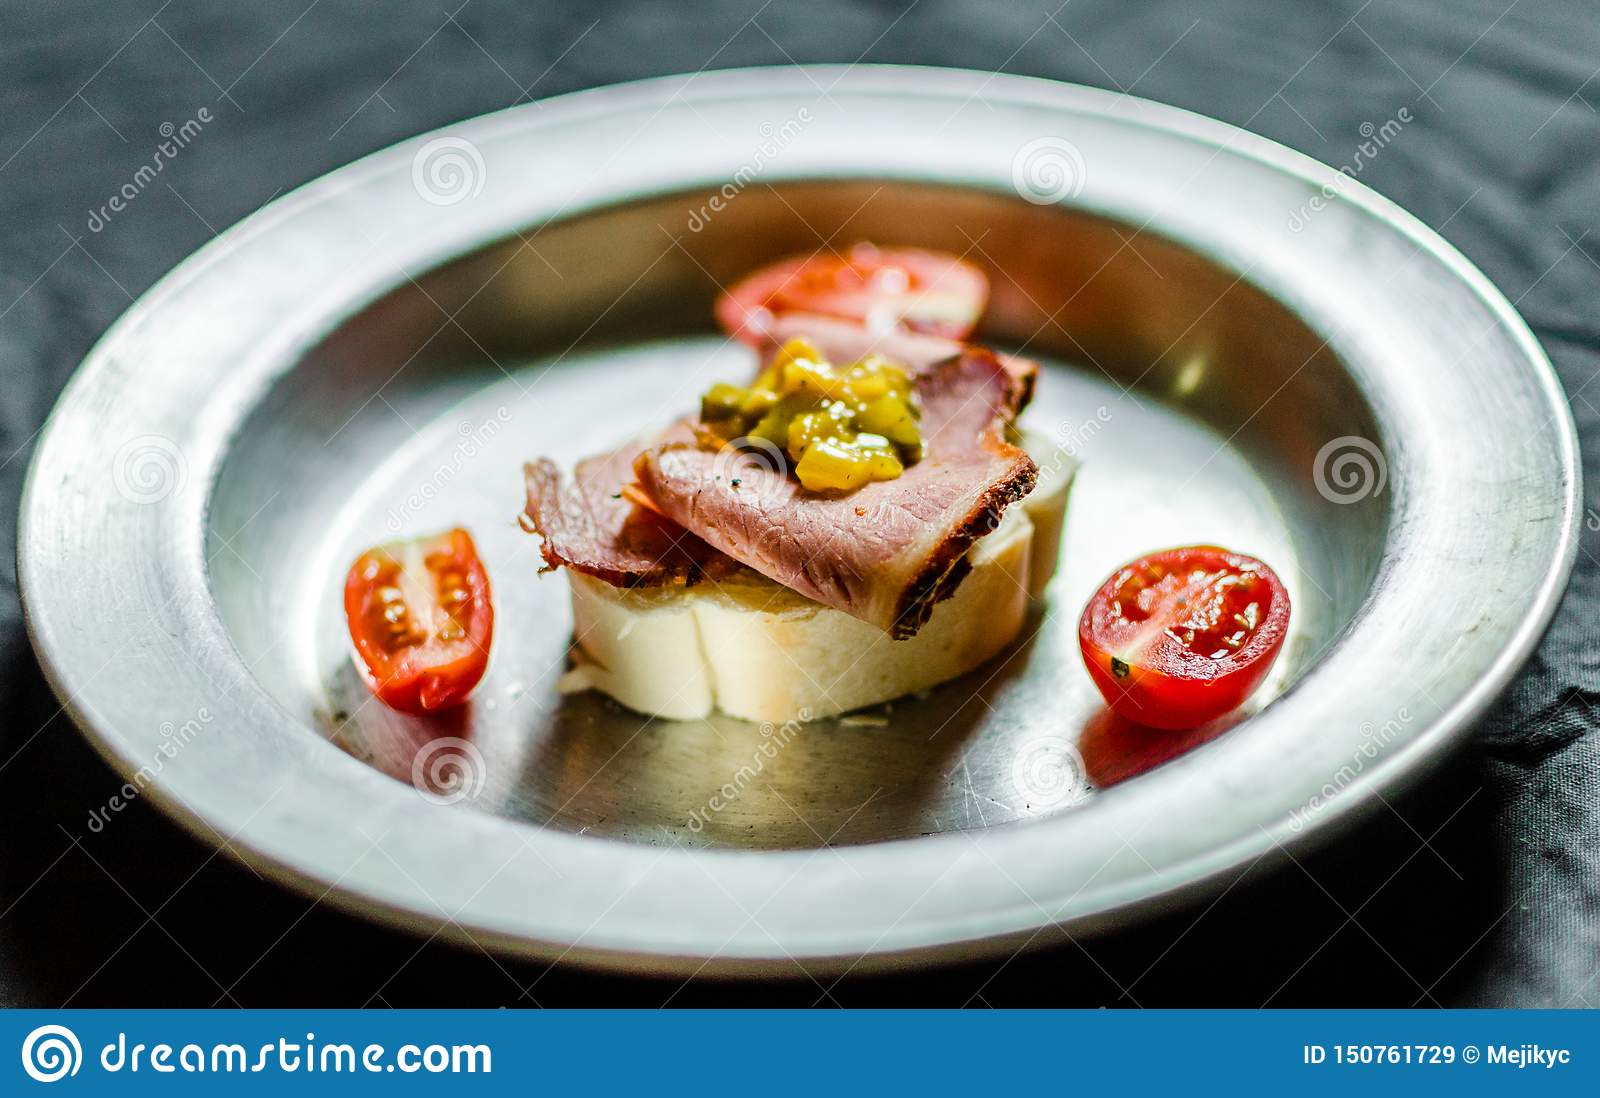 Jewish appetizer sandwich with pastrami, mustard relish, and cherry tomatoes